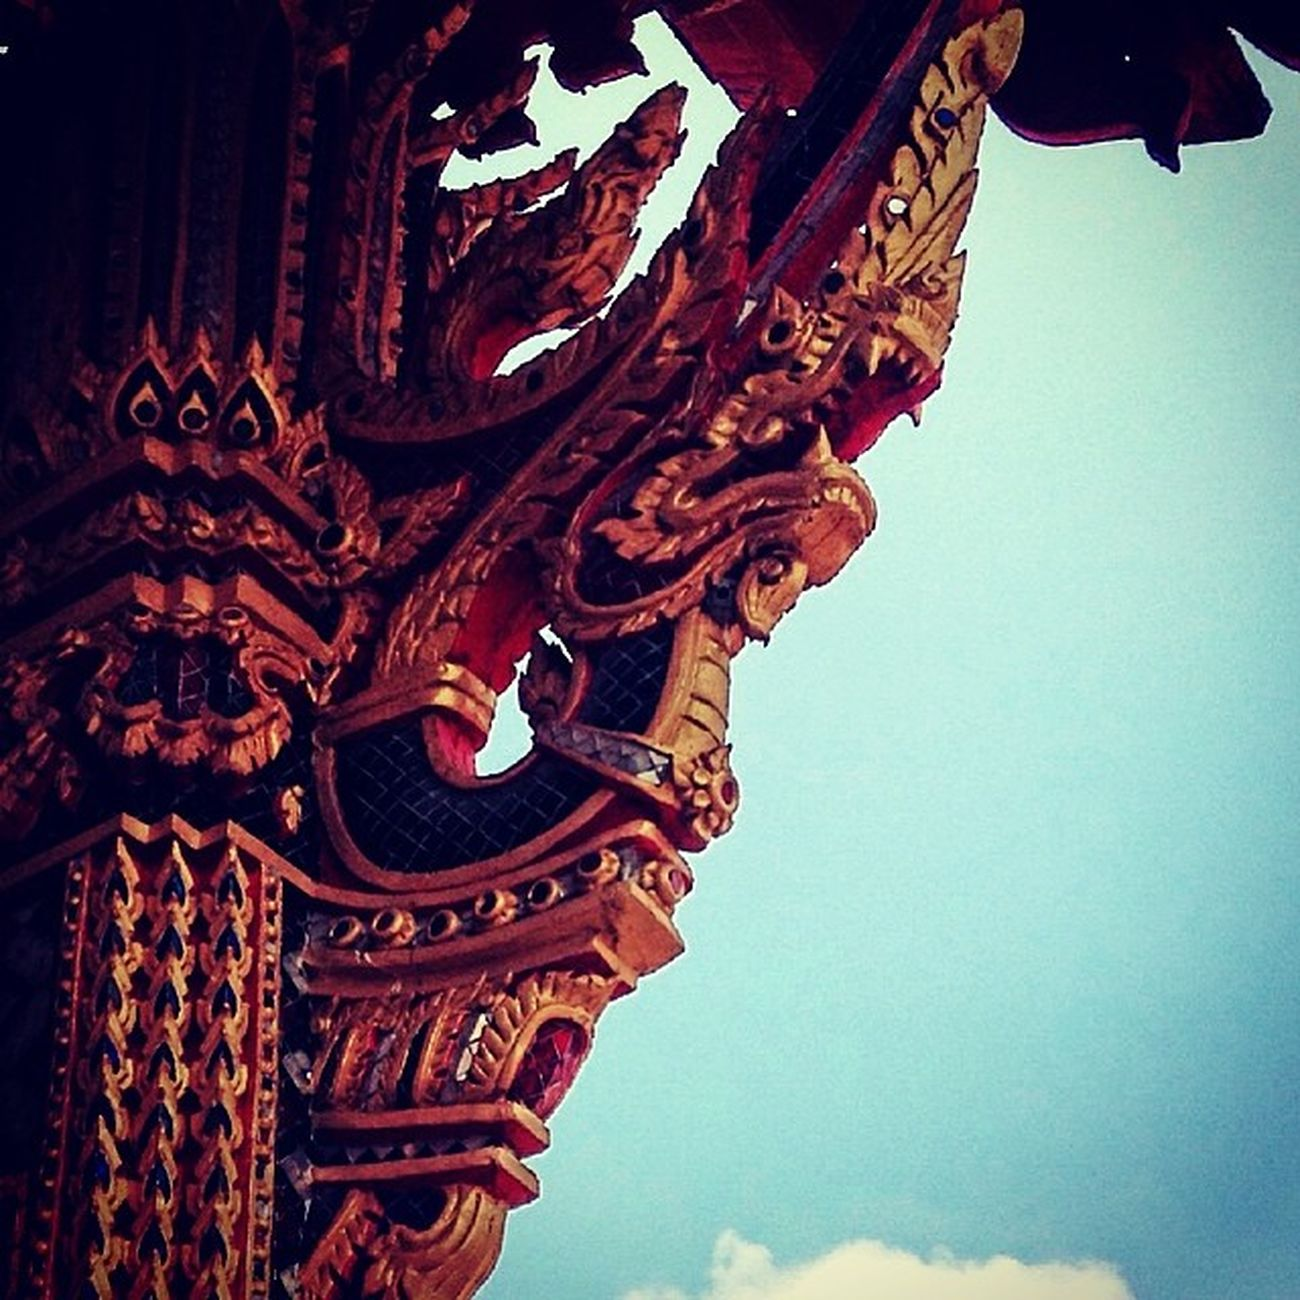 Temple Post Dragon Design Detail Happybatins Batintin Instaios Insta_awe Instalike InstaPlace Places Th Thailand Instagramthat Tweegram Followstagram Megusta Melikey Happybatins Batintin Ignation Igers Igersmanila Igersoftheday